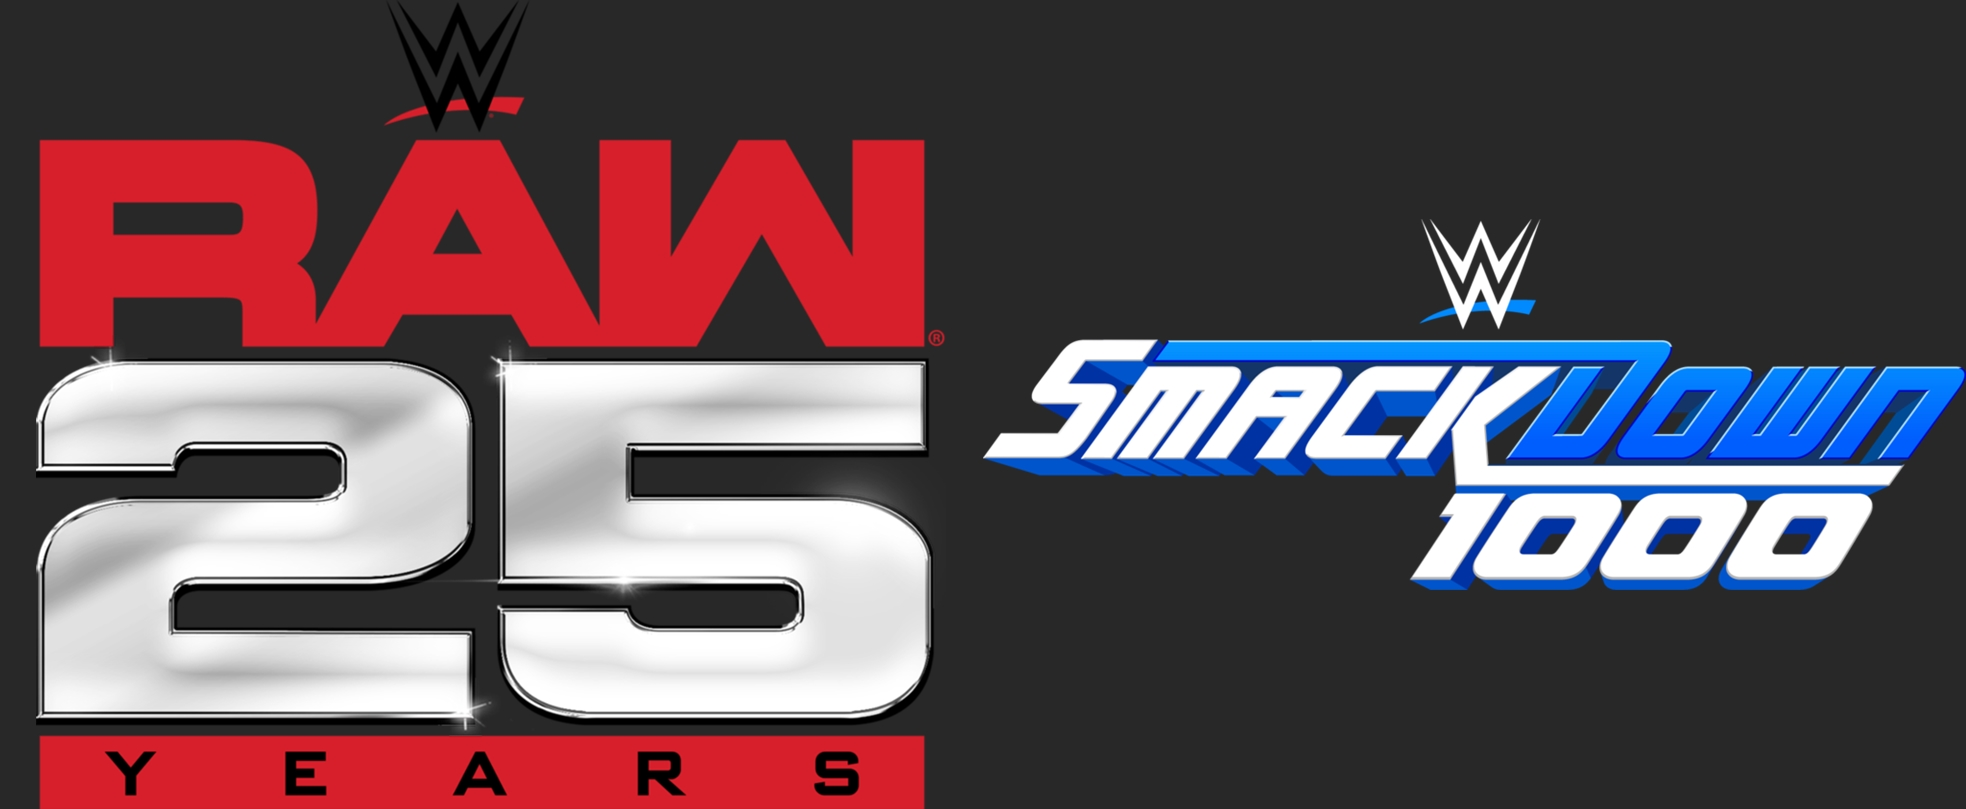 Raw 25 And Smackdown 1000 Shows Nostalgia No Longer Sells